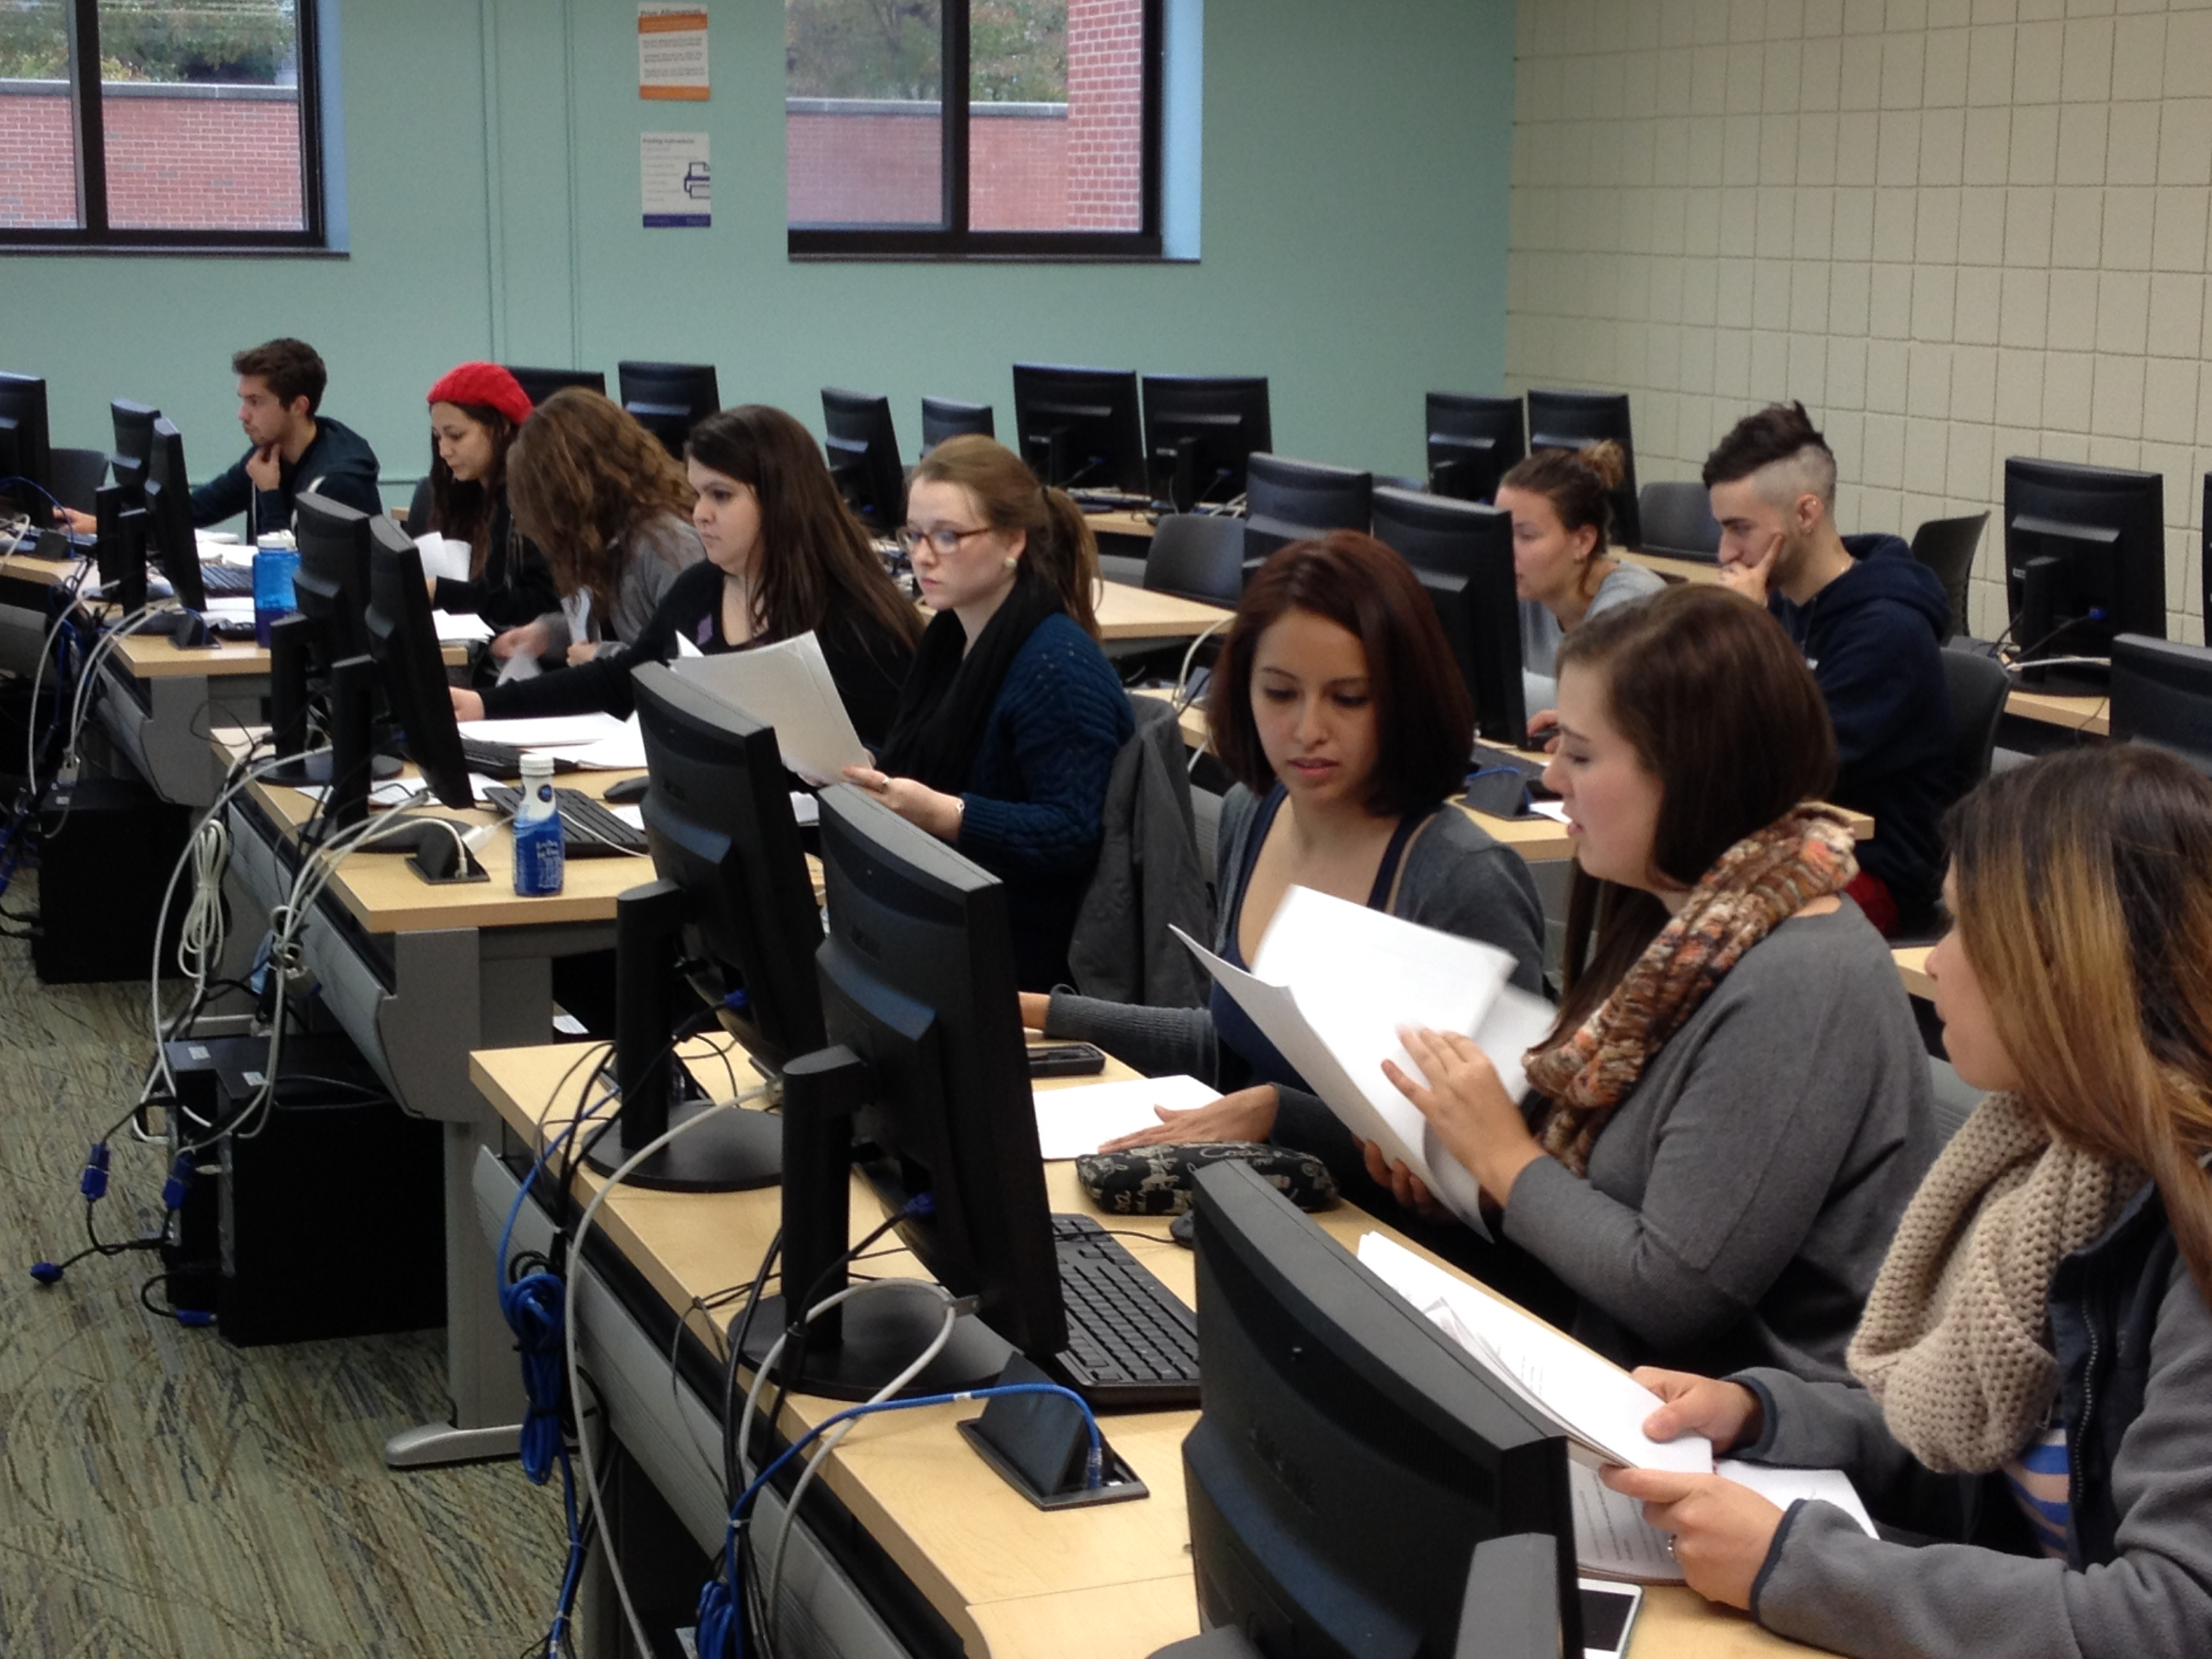 Students hard at work doing data analysis